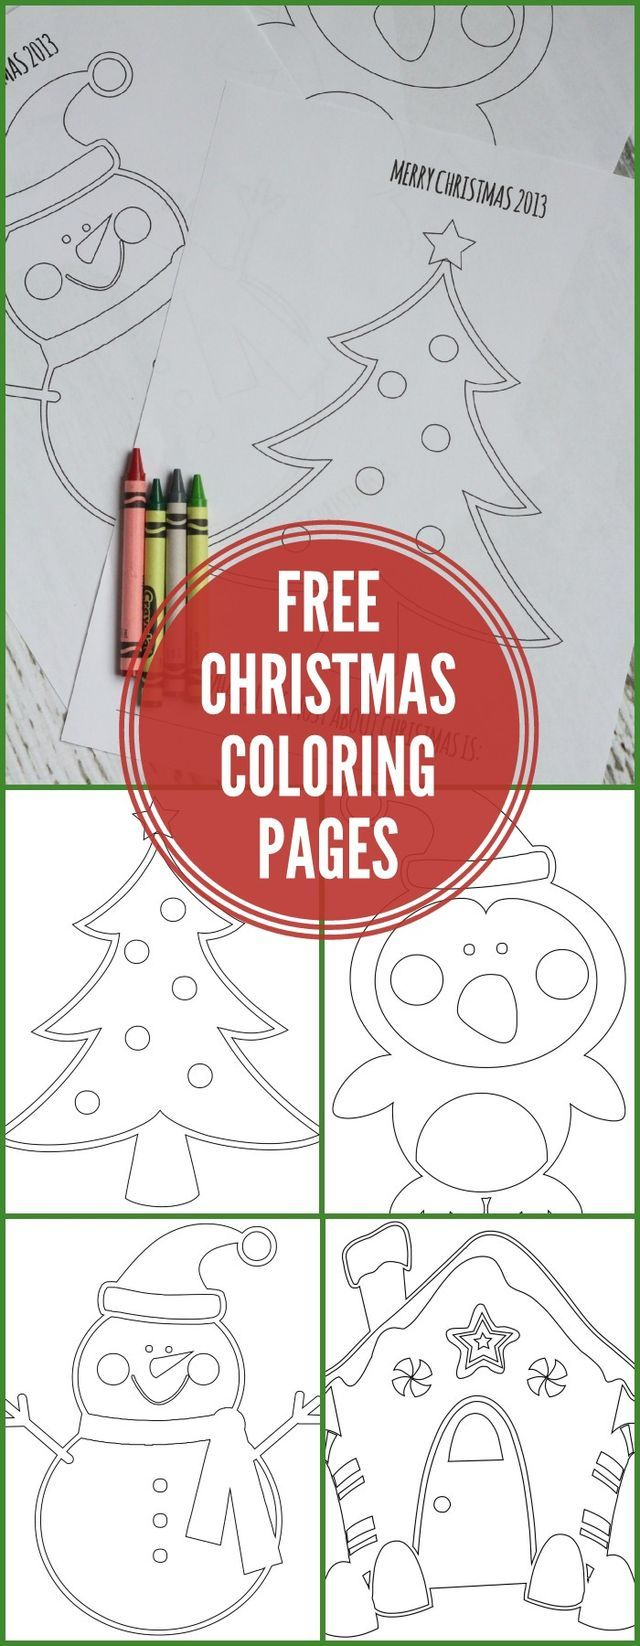 Free Christmas Coloring Pages (Lil\' Luna)